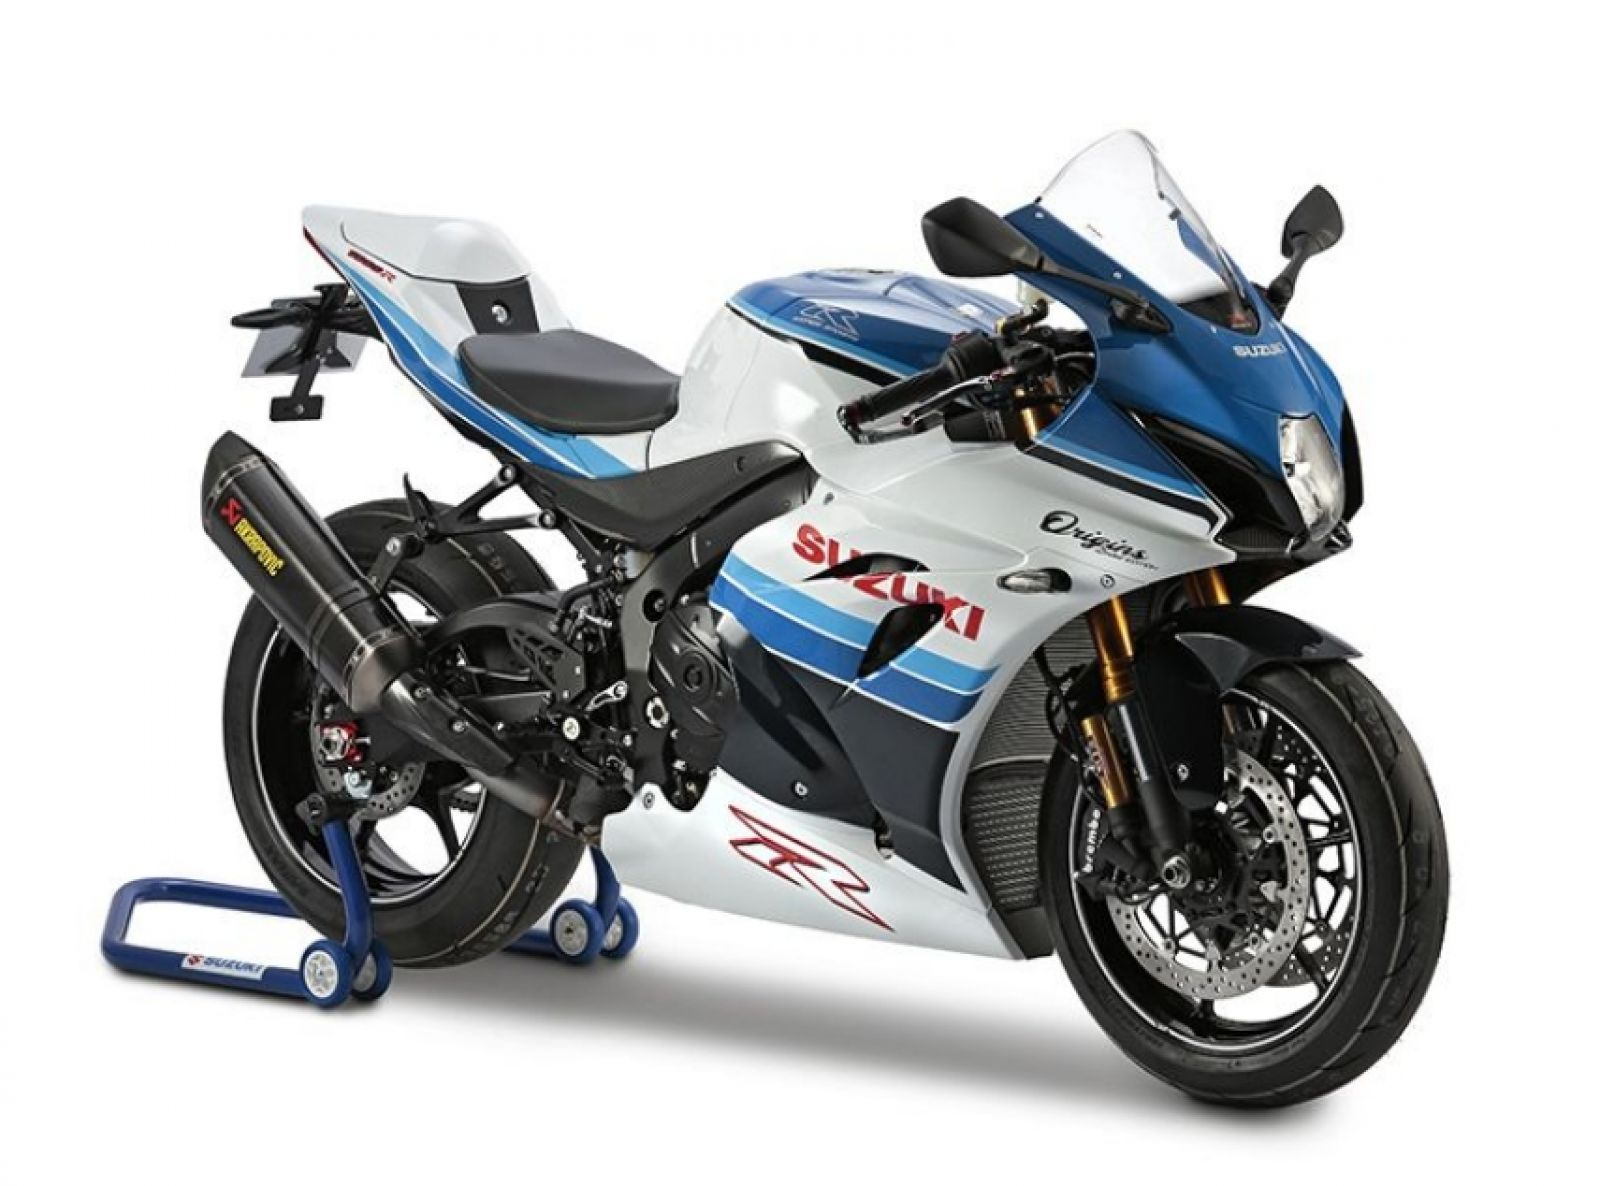 actualité - GSX-R1000R Origins - image d'illustration 15